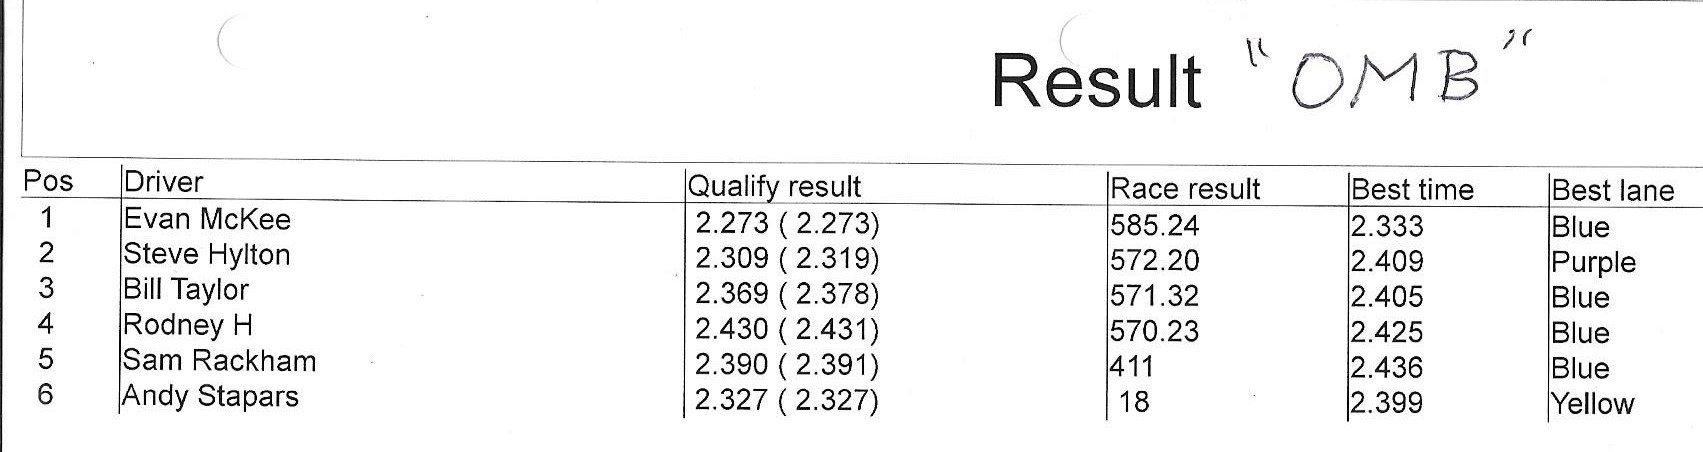 212020 omb results.jpeg